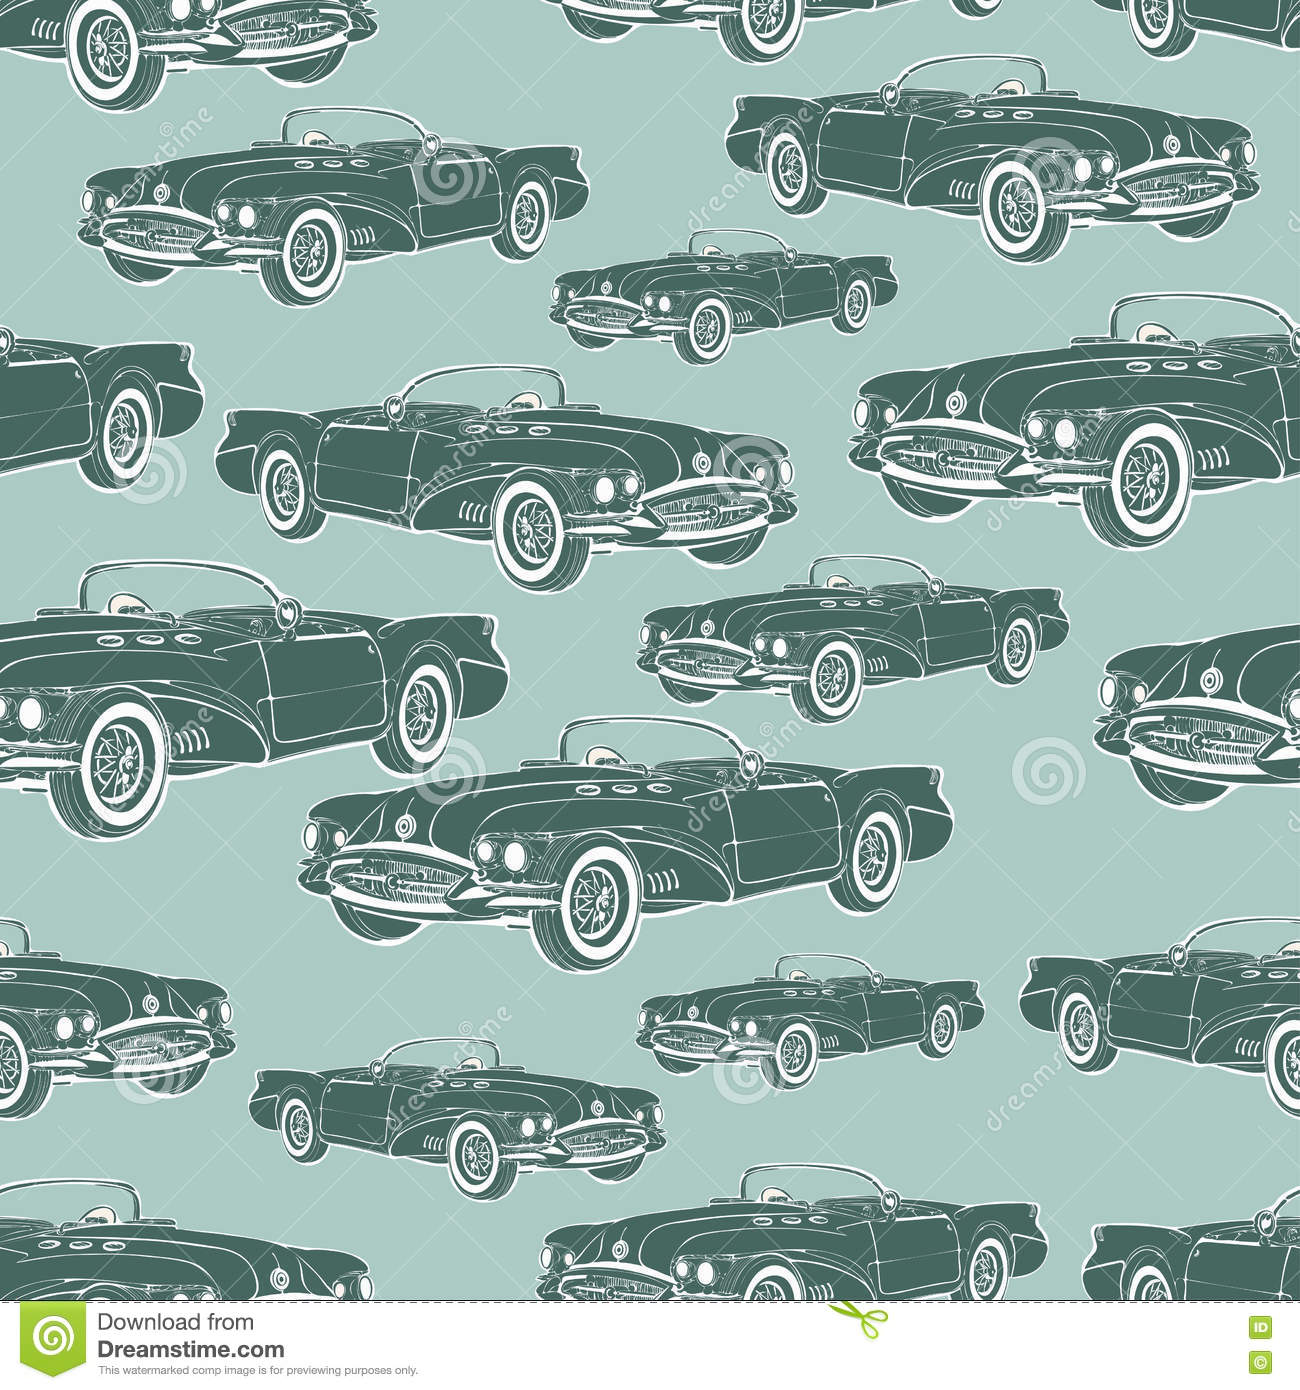 Make iphone, android, mobile and desktop screen prepossessing to get cartoon car wallpaper. Vintage Car Cabriolet Seamless Pattern Retro Cartoon Background Monochrome For The Design Of Wallpaper Wrapper Fabric Vector Stock Vector Illustration Of Cartoon Automotive 78499913